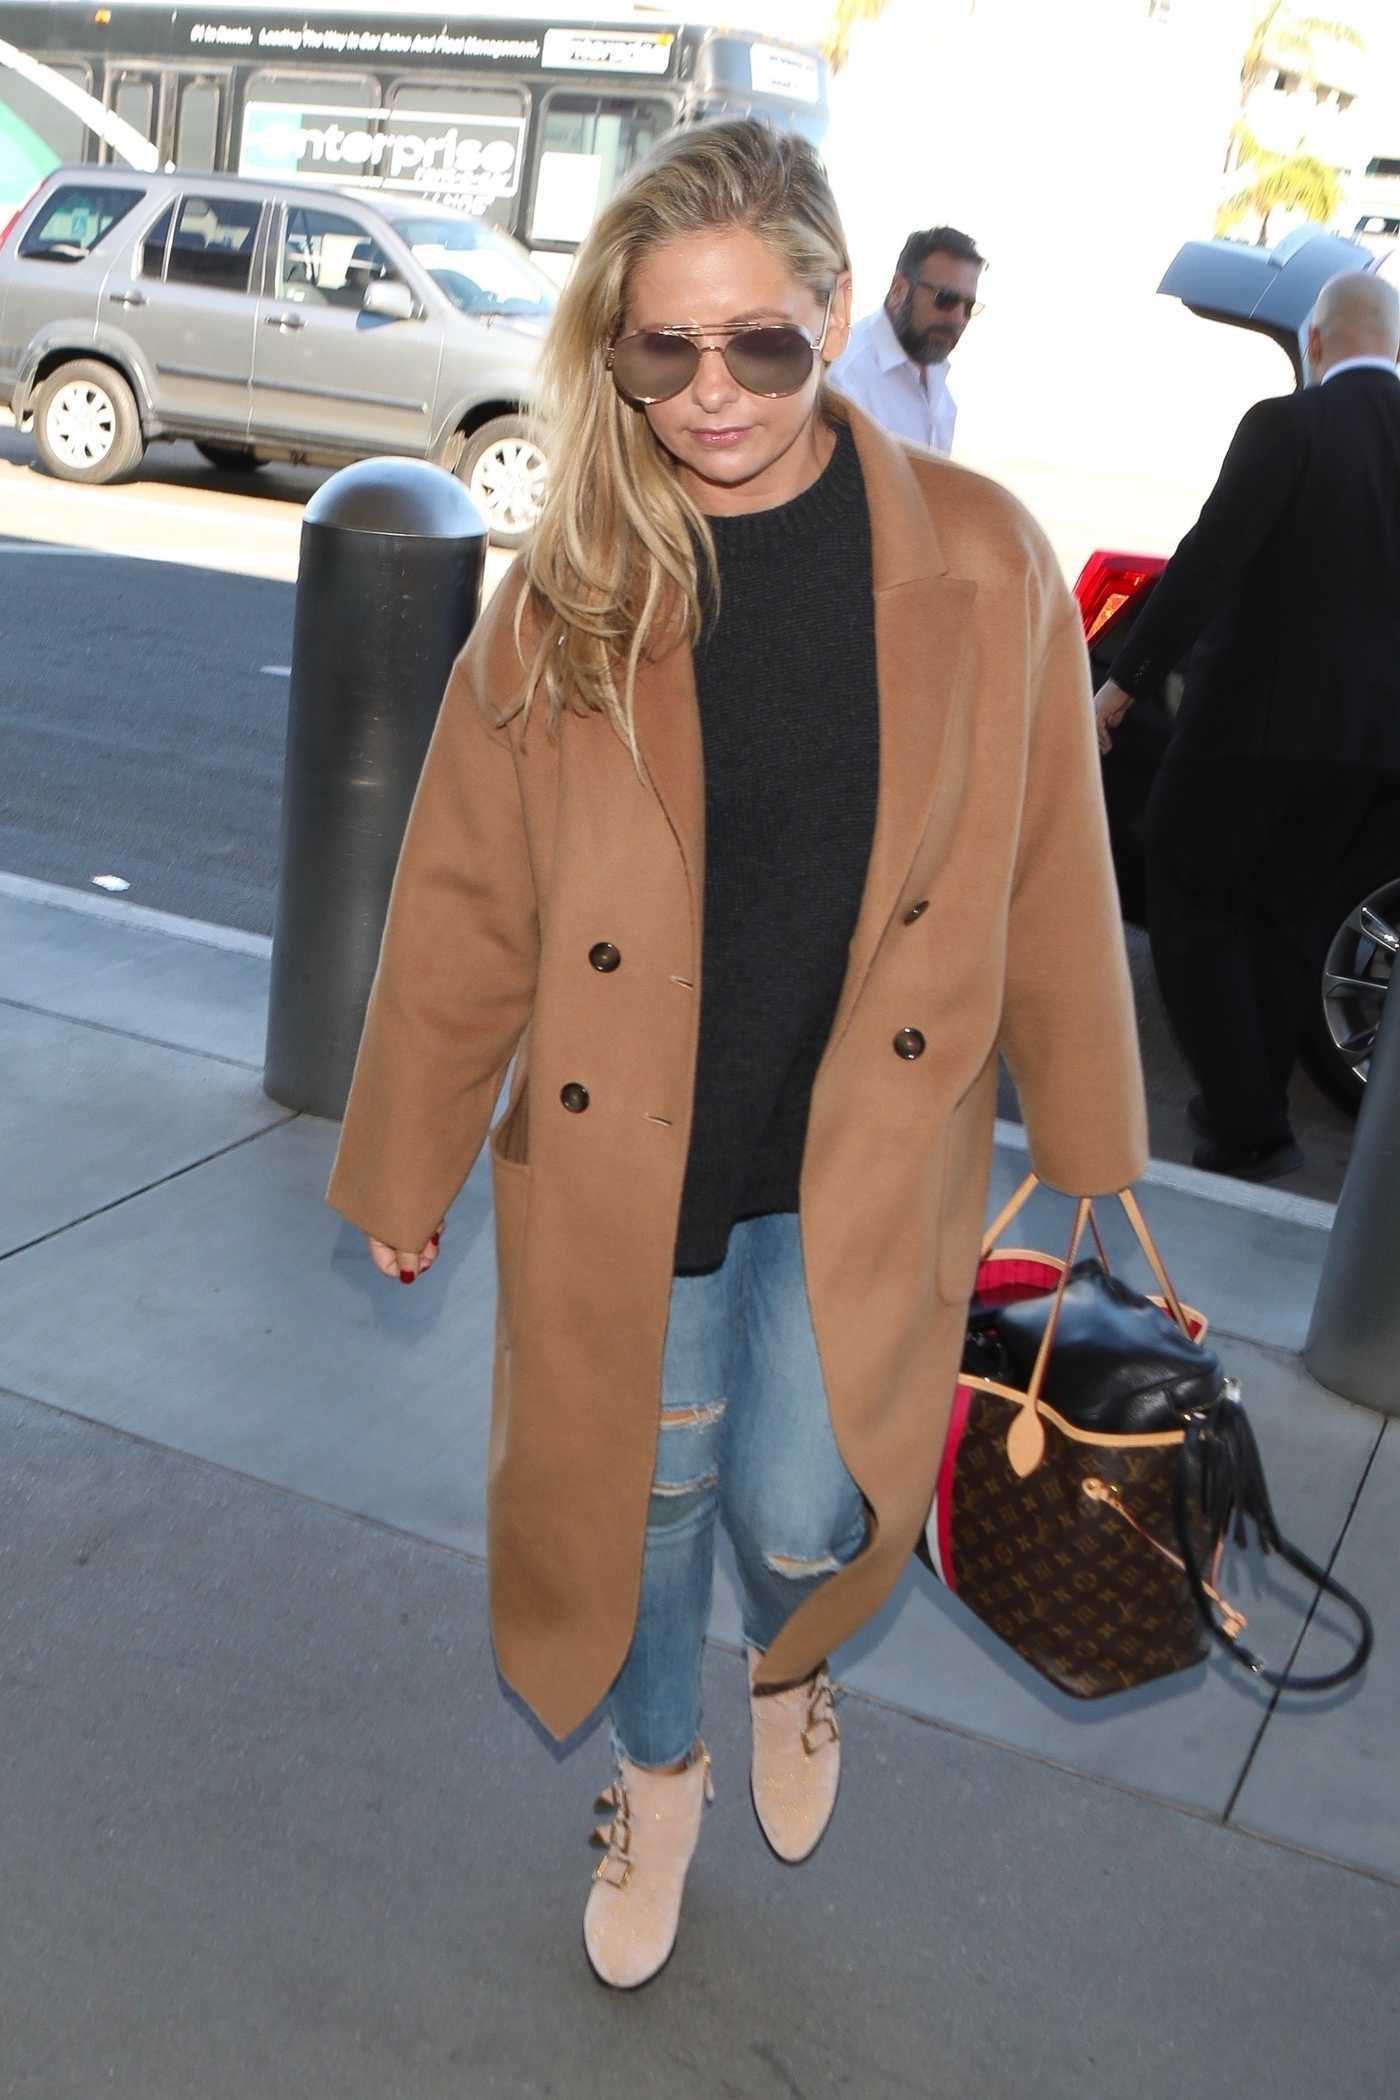 Sarah Michelle Gellar in a Beige Coat Arrives at LAX Airport in Los Angeles 10/17/2018